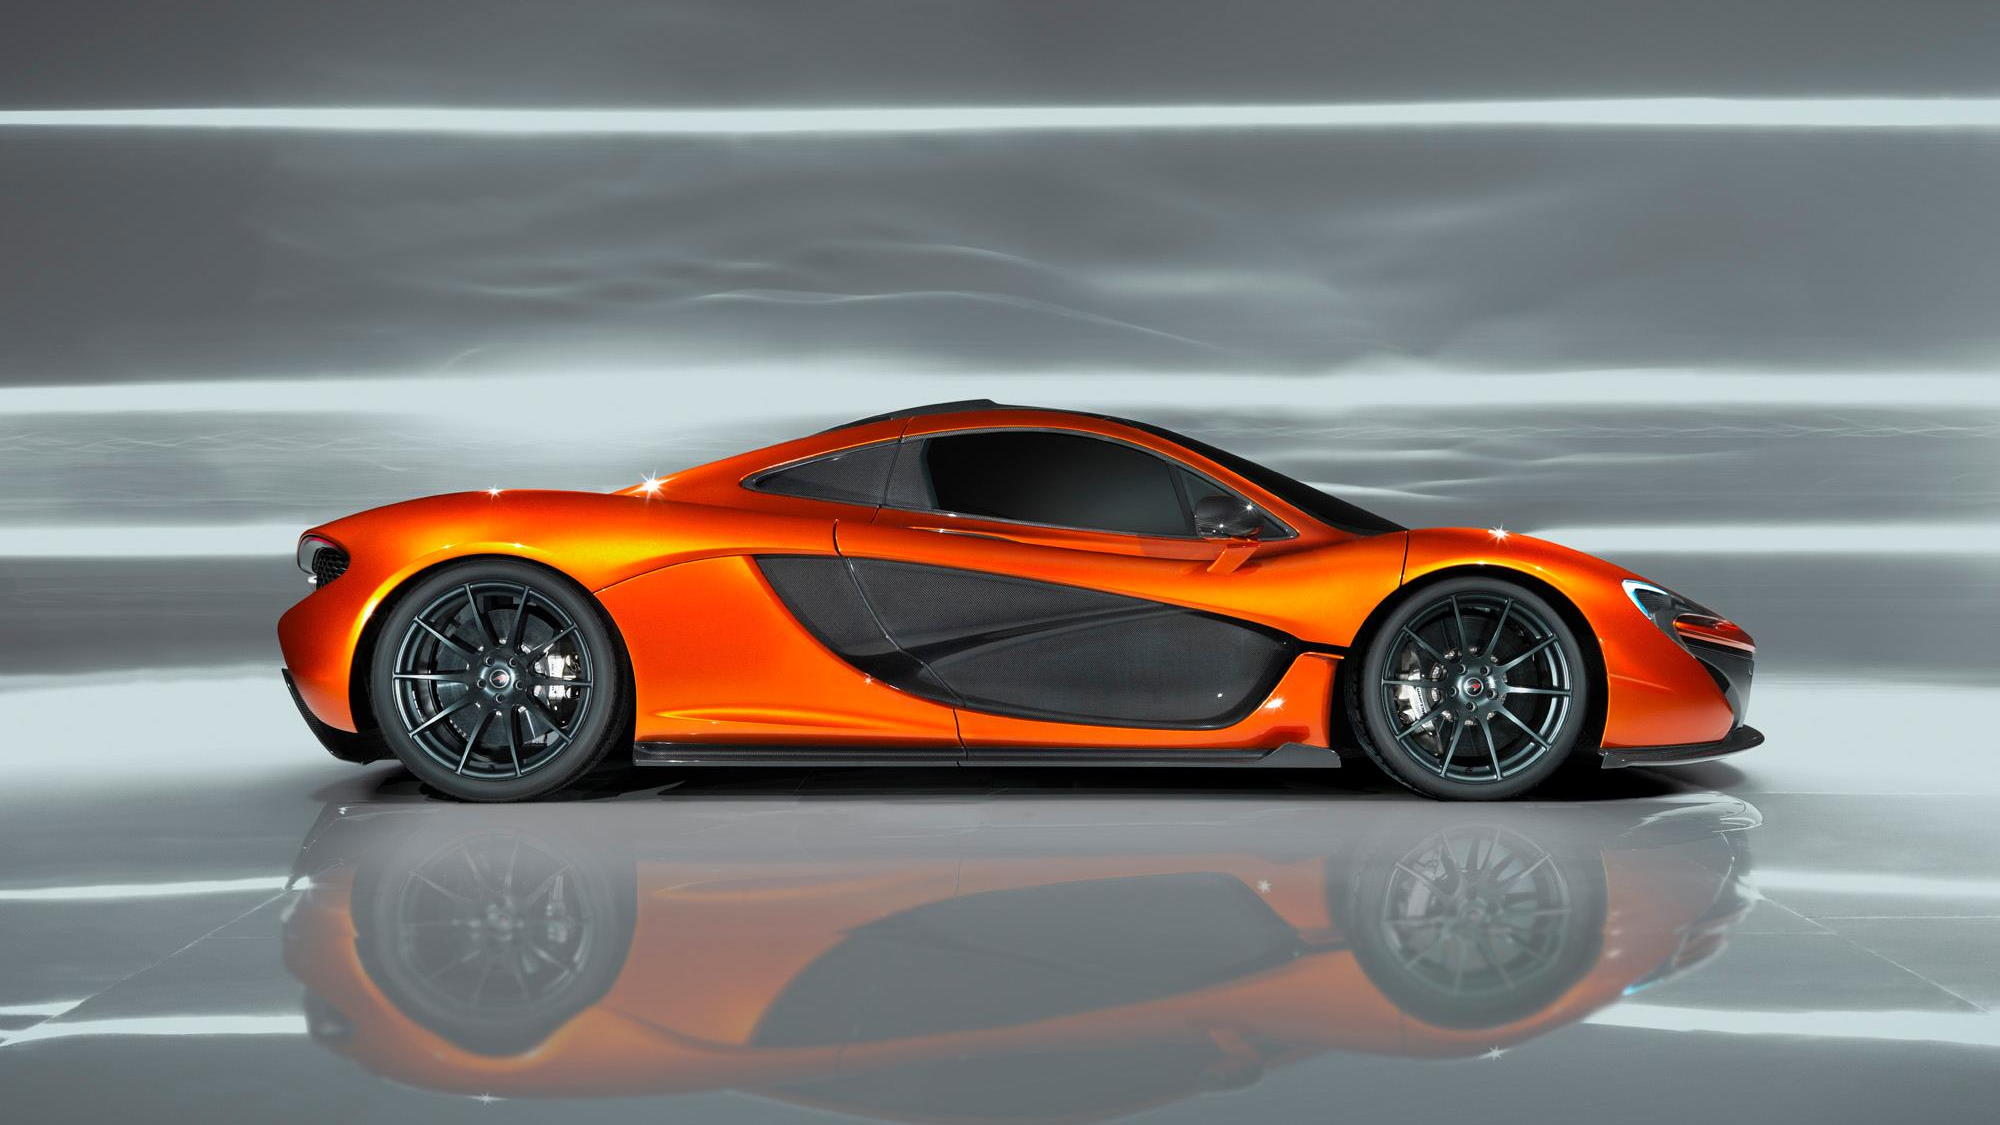 McLaren P1 supercar, first images